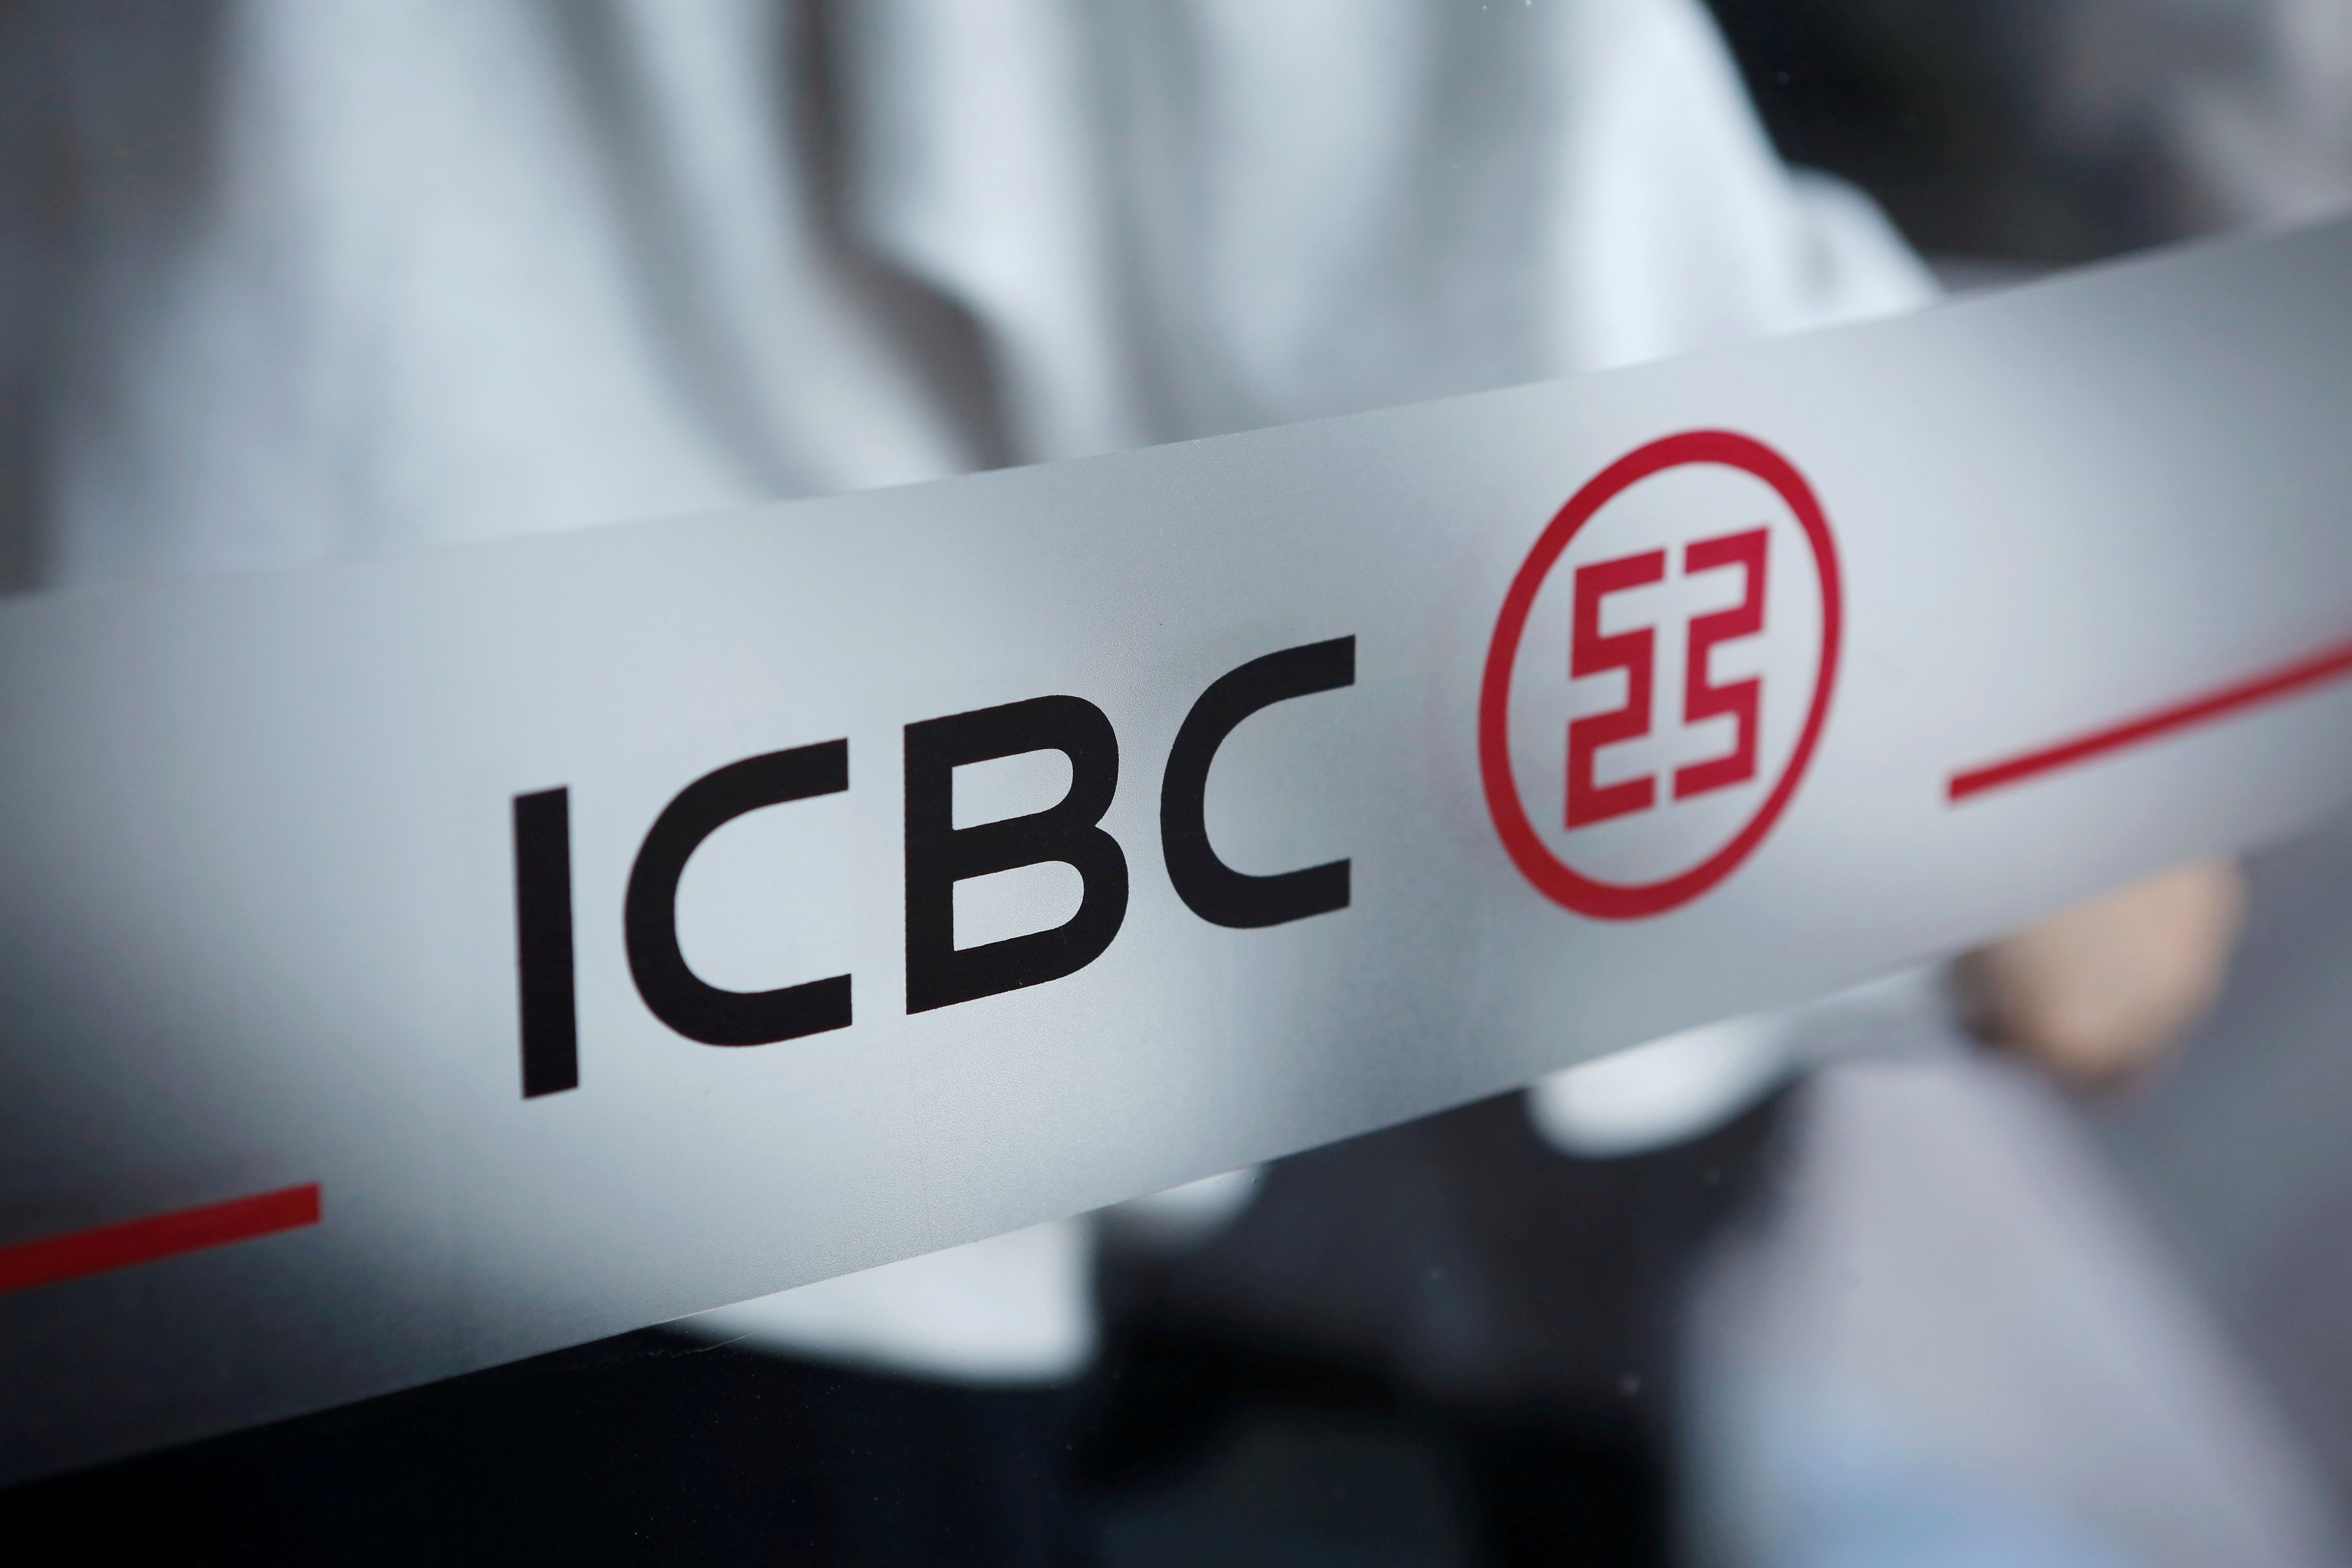 The logo of Industrial and Commercial Bank of China (ICBC) is pictured at the entrance to its branch in Beijing, China April 1, 2019.    REUTERS/Florence Lo/File Photo